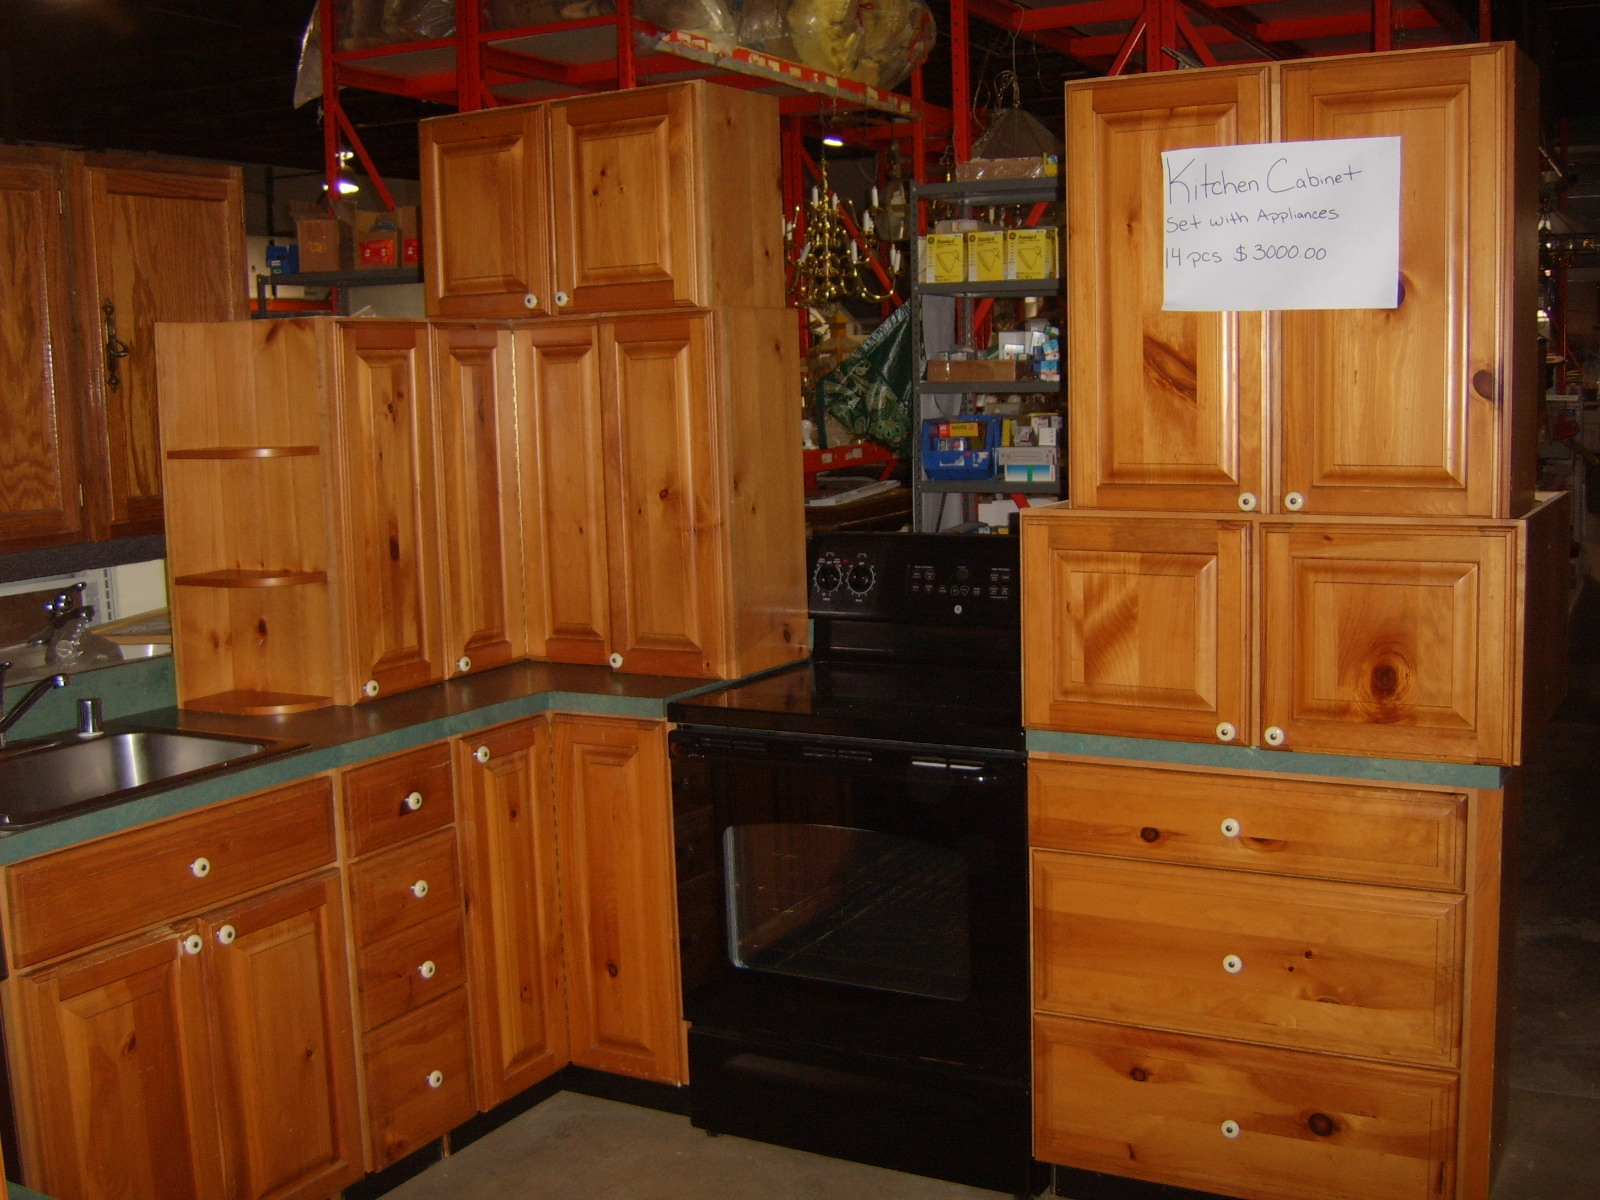 Staring into the light pine kitchen cabinets and appliances for sale